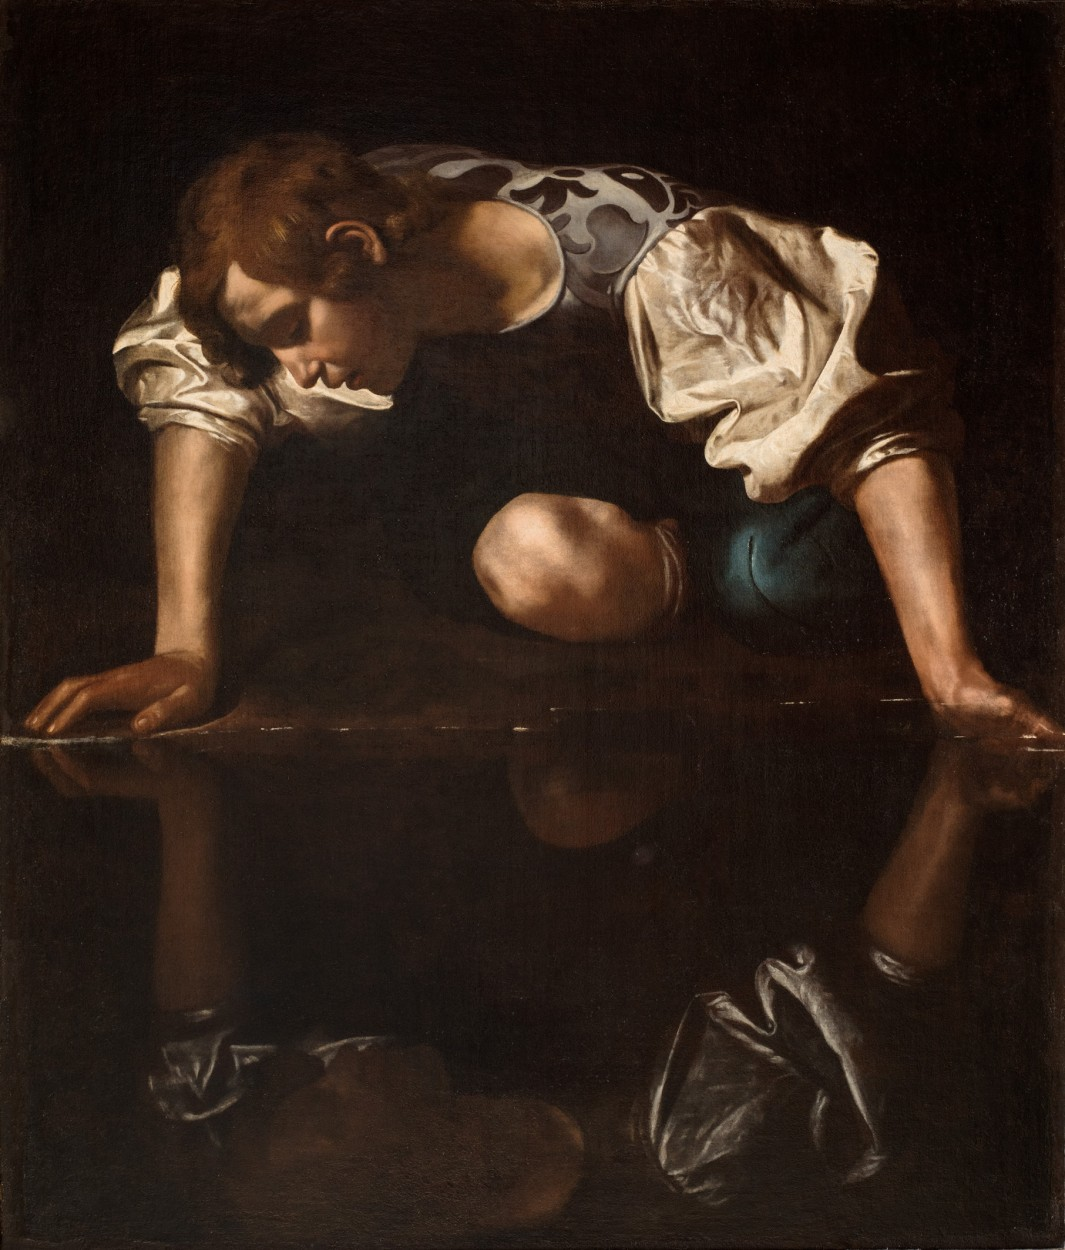 Narcissus by Caravaggio via DailyArt app, your daily dose of art getdailyart.com